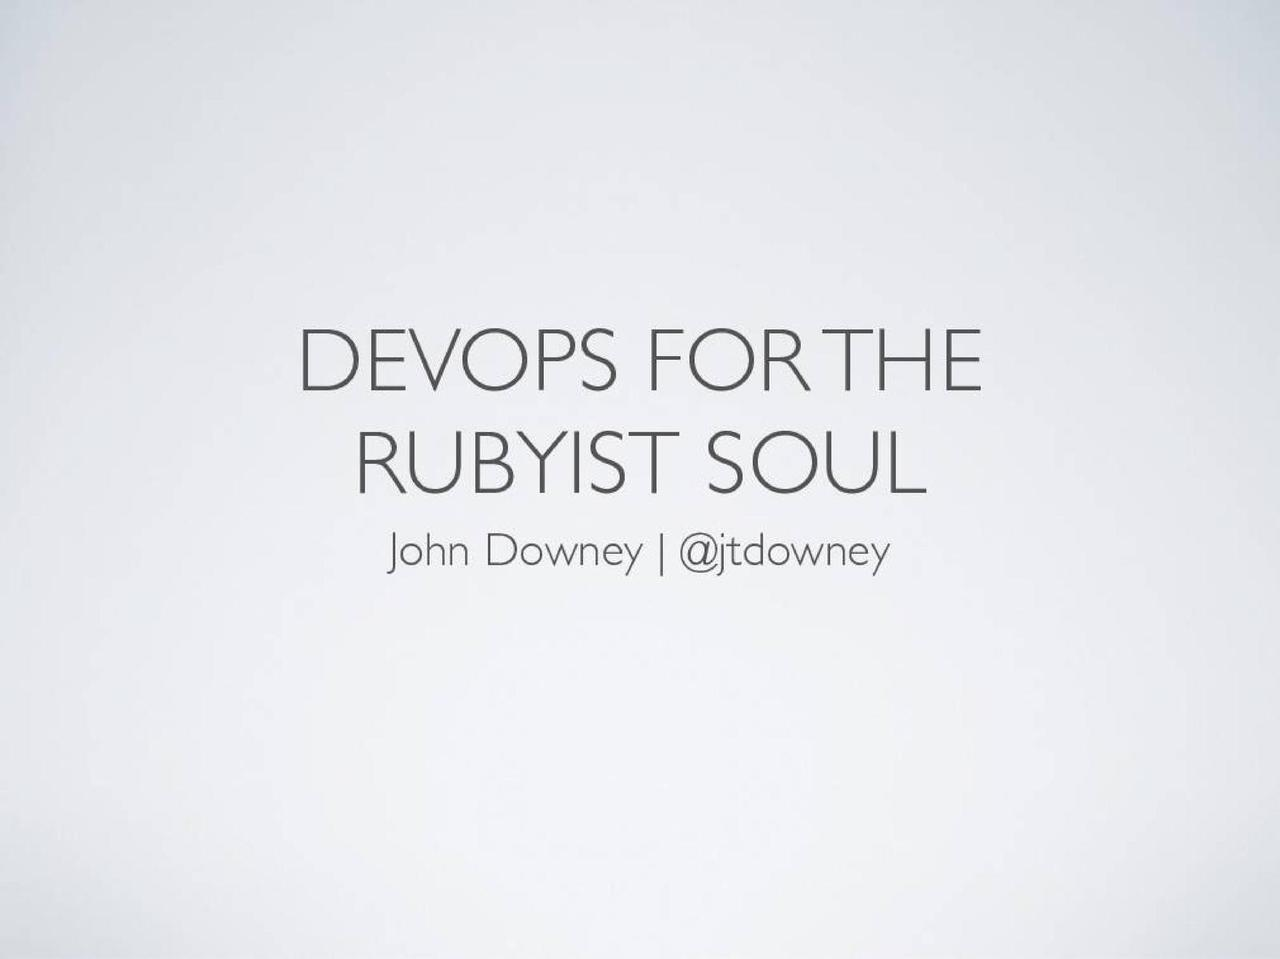 DevOps for the Rubyist Soul at RubyNation 2013